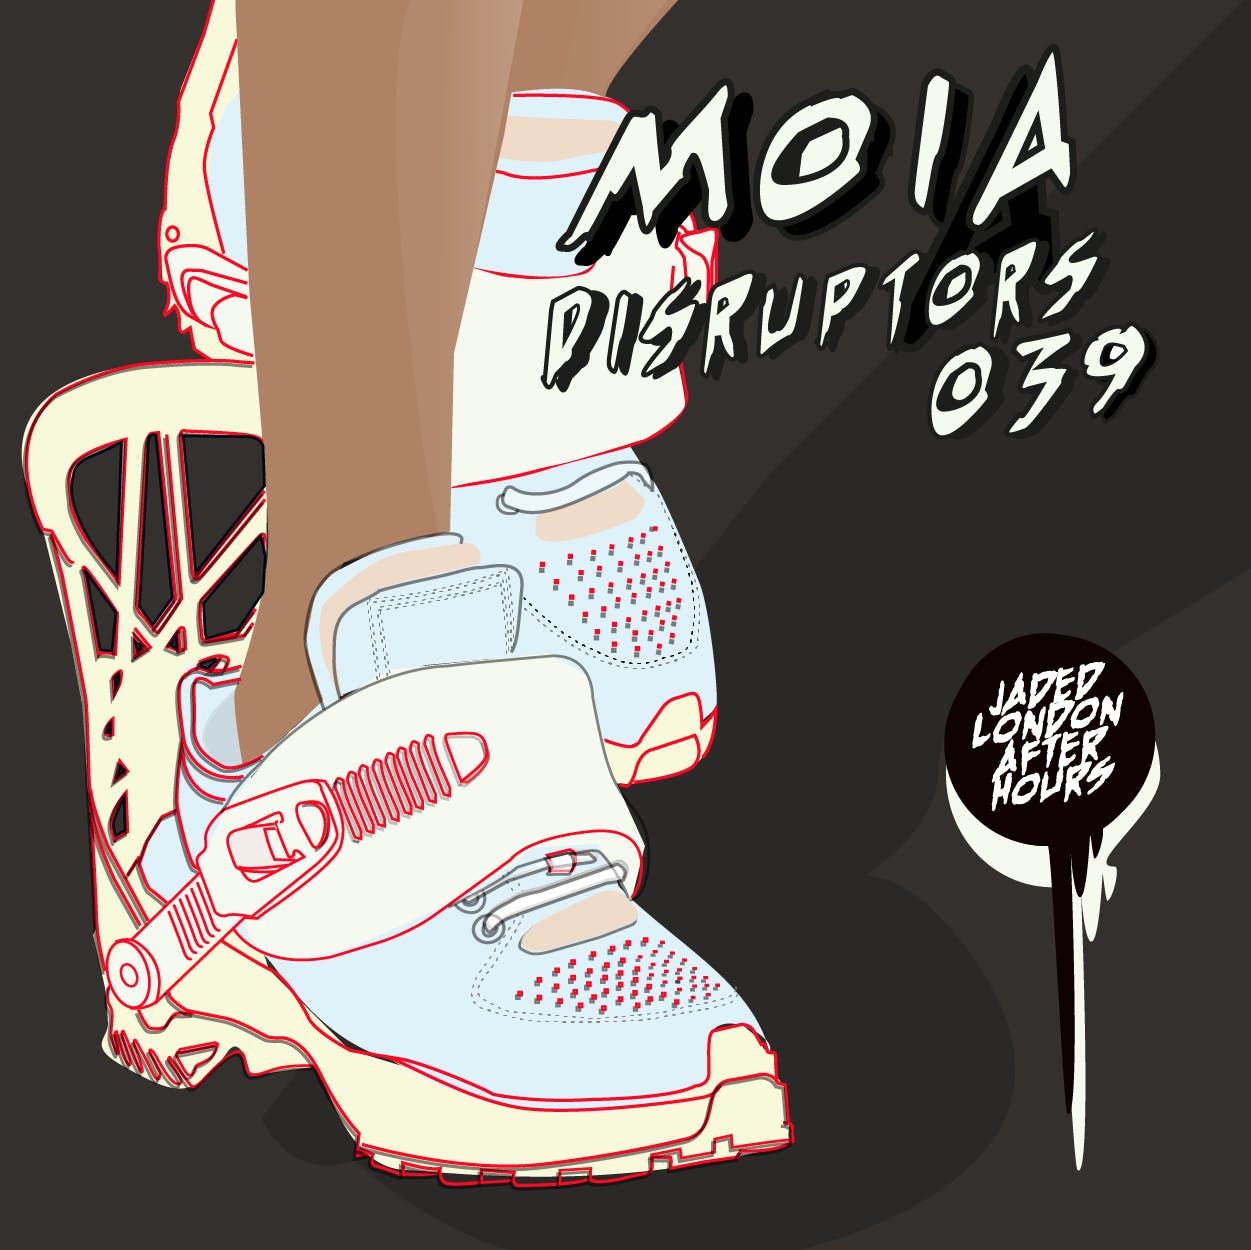 Disruptor 039 is Moia